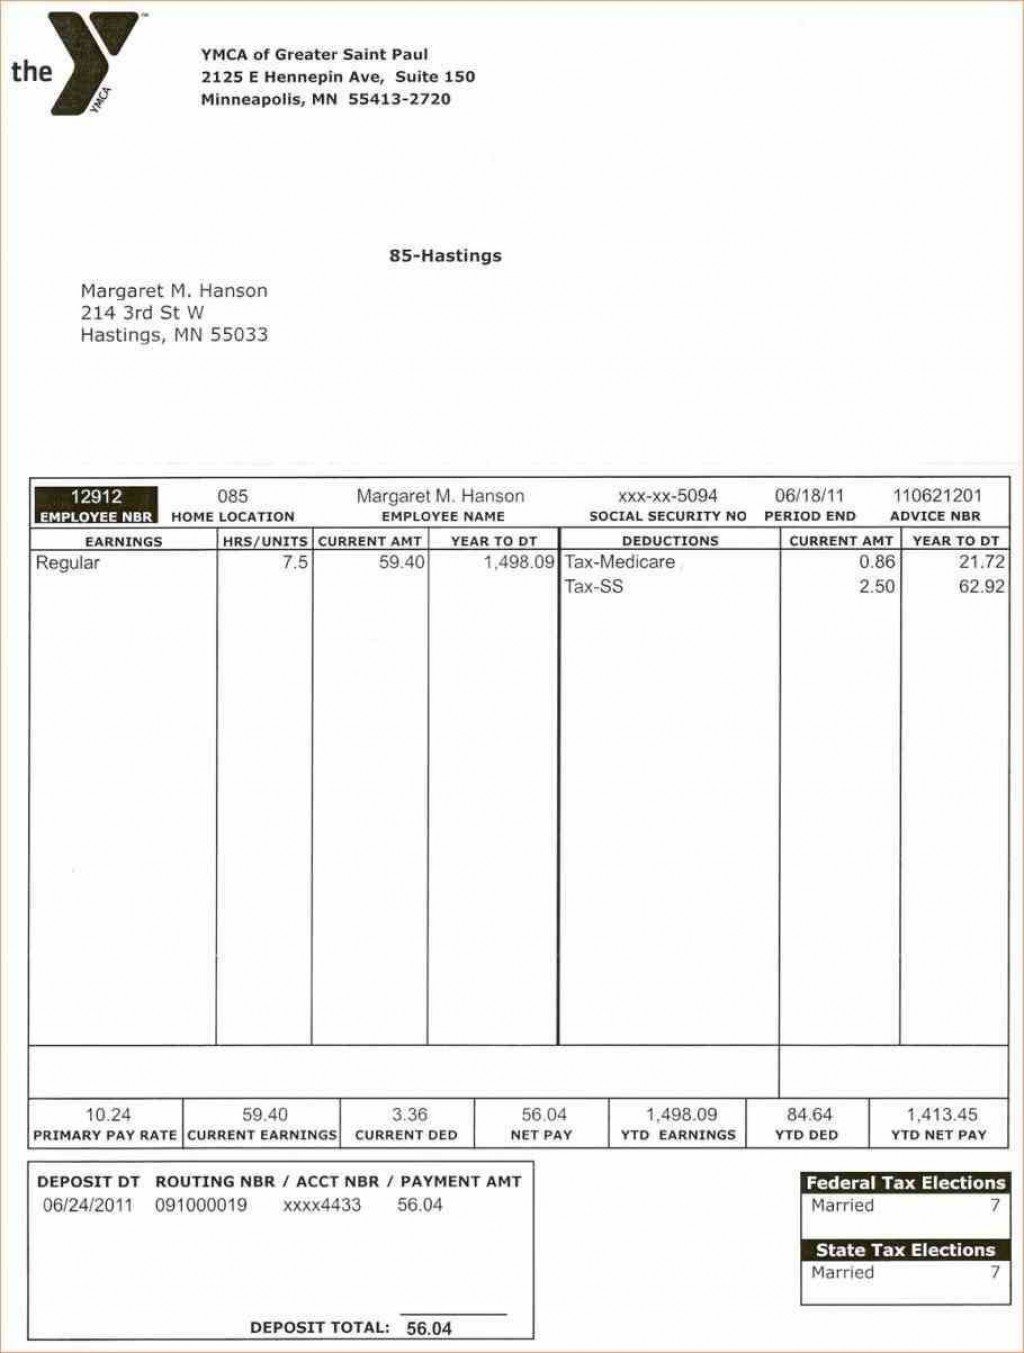 005 Top Pay Stub Template Word Image  Document Check Microsoft FreeLarge